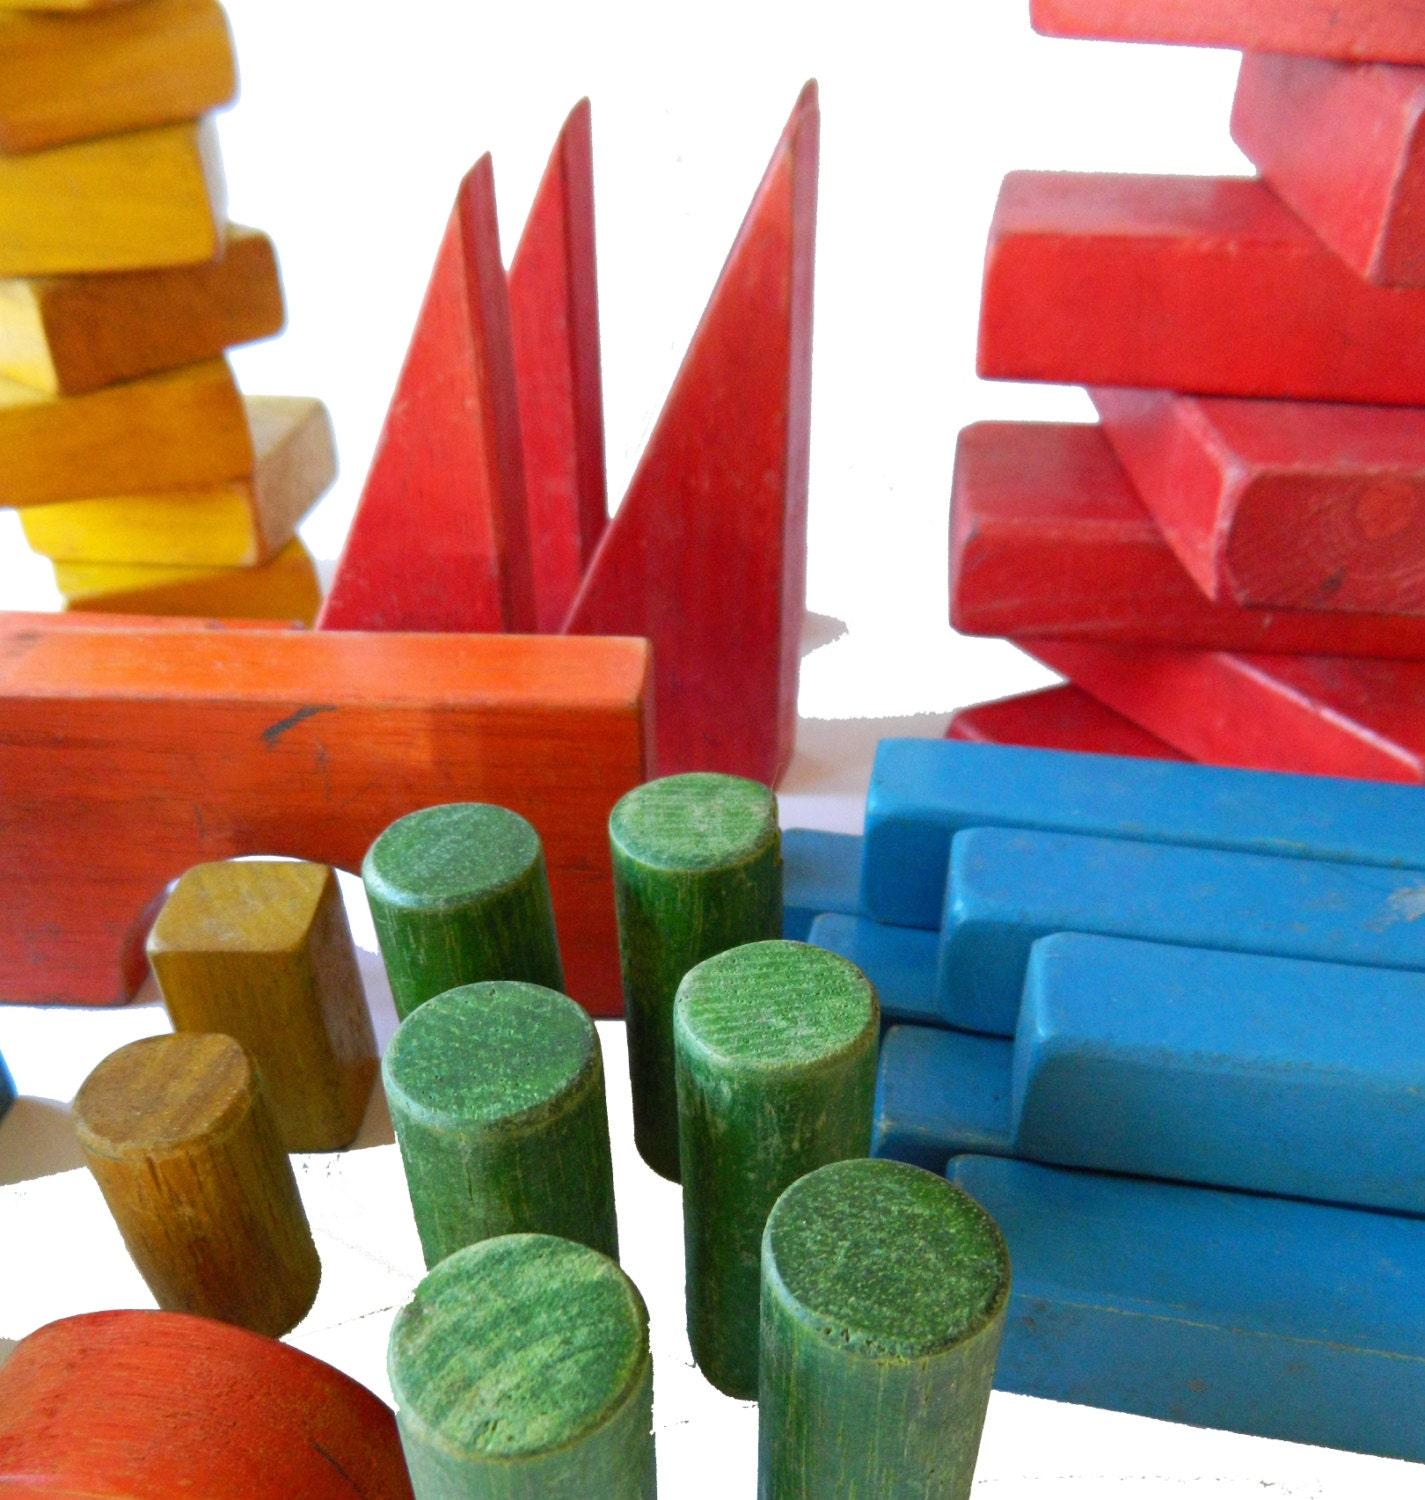 Vintage wood blocks brightly colored for castles and